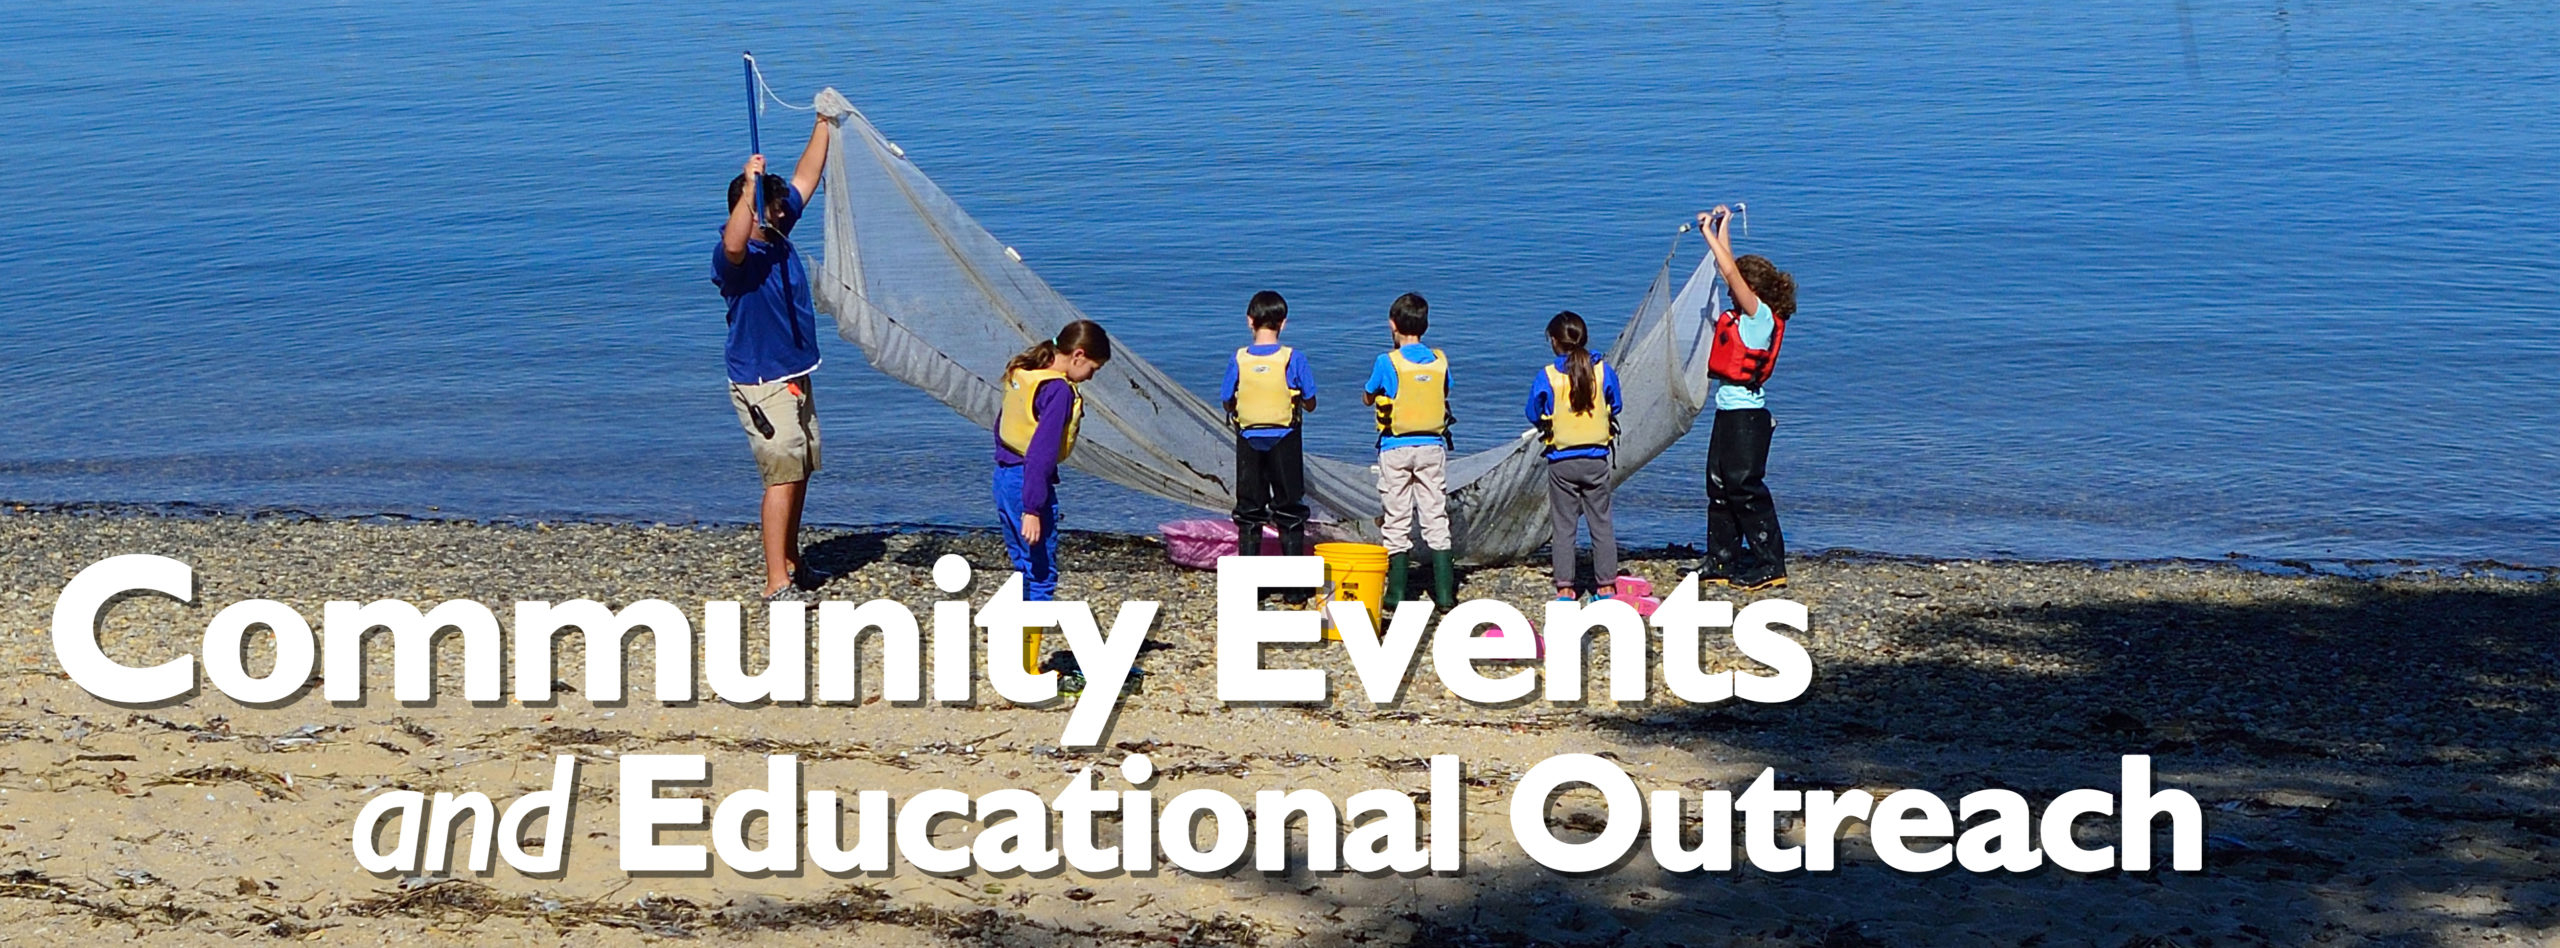 Community Events & Educational Outreach - Town Of Oyster Bay Inside Town Of Oyster Bay 2021 Town Calendar